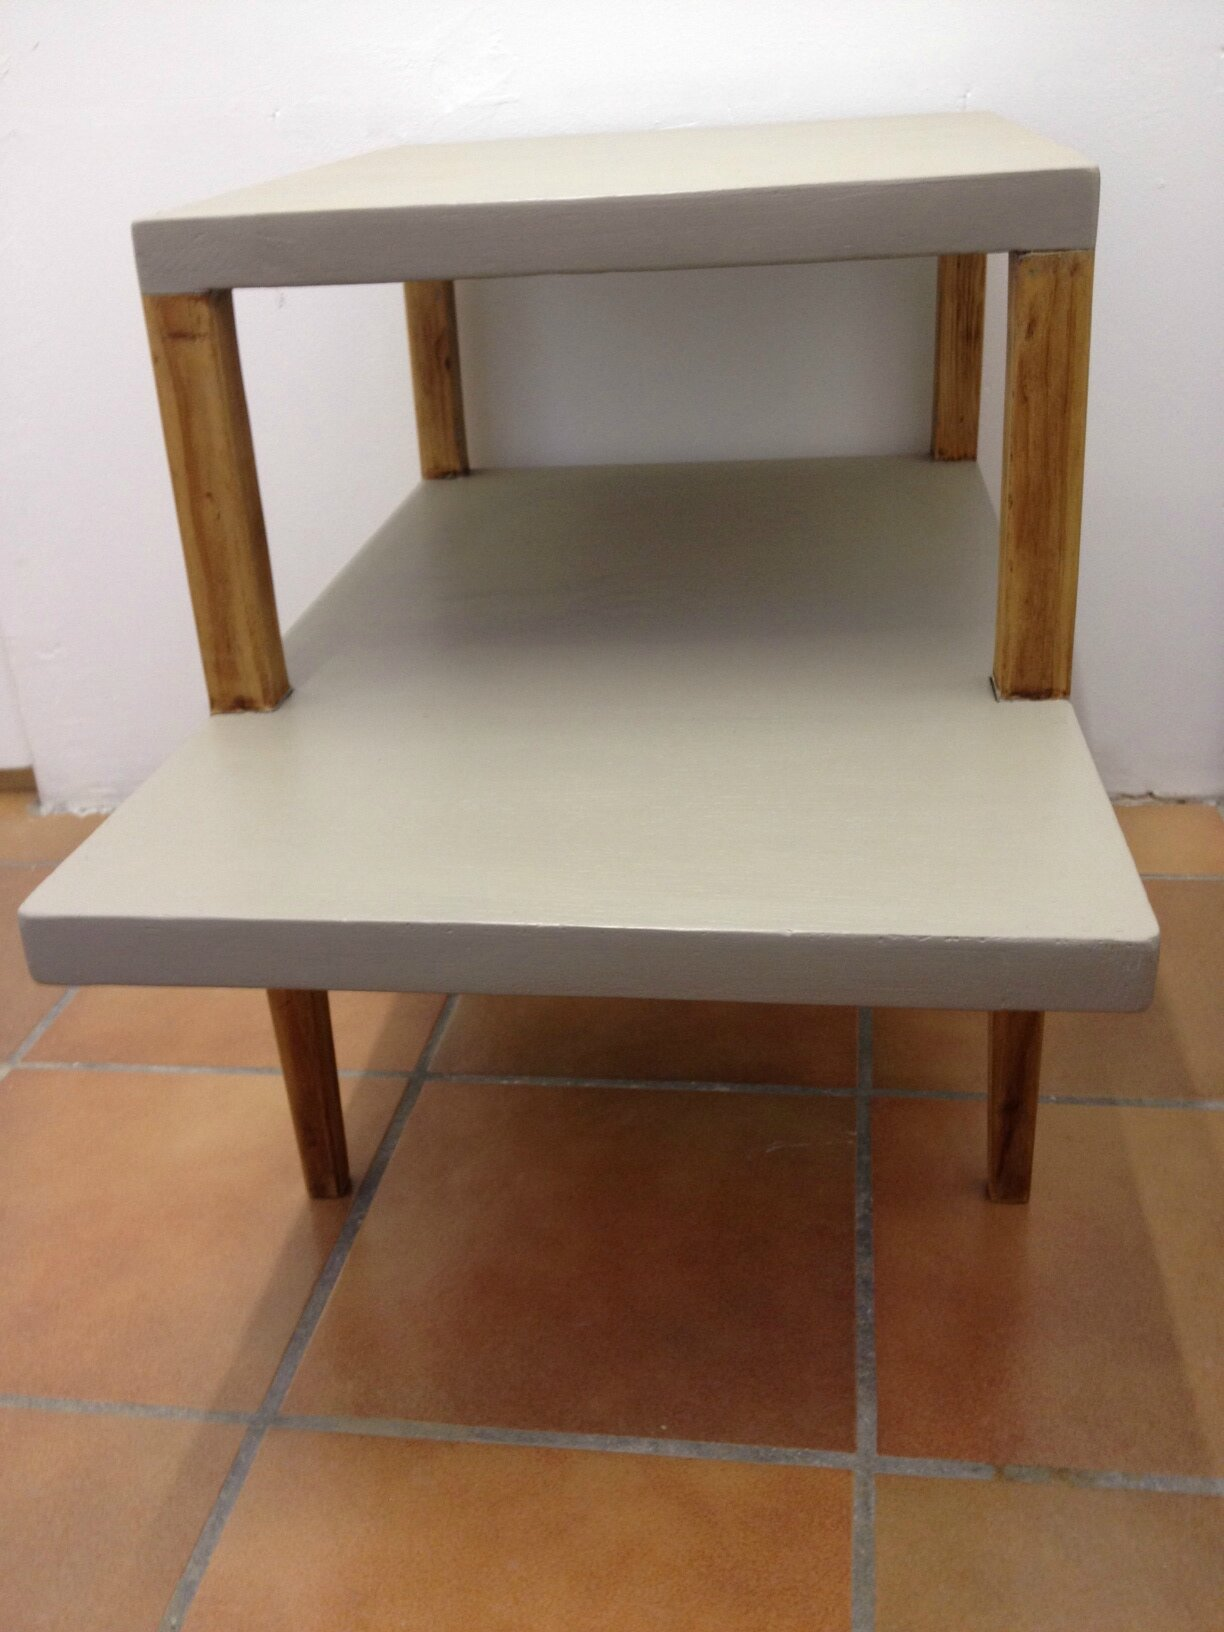 Table d 39 appoint pieds compas ann es 50 la petite factory for Epl table 98 99